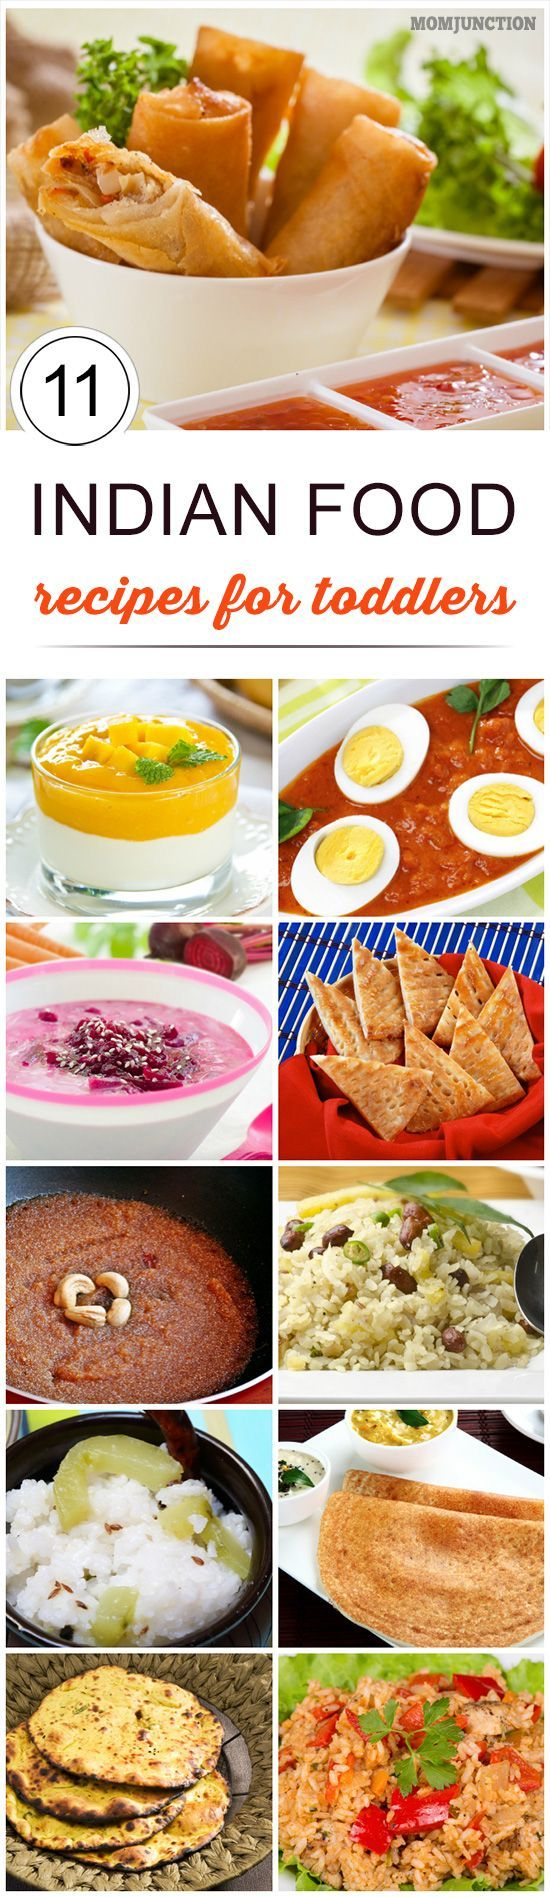 5 must try sanjeev kapoor recipes for kids indian food recipes 5 must try sanjeev kapoor recipes for kids indian food recipes food and recipes forumfinder Choice Image